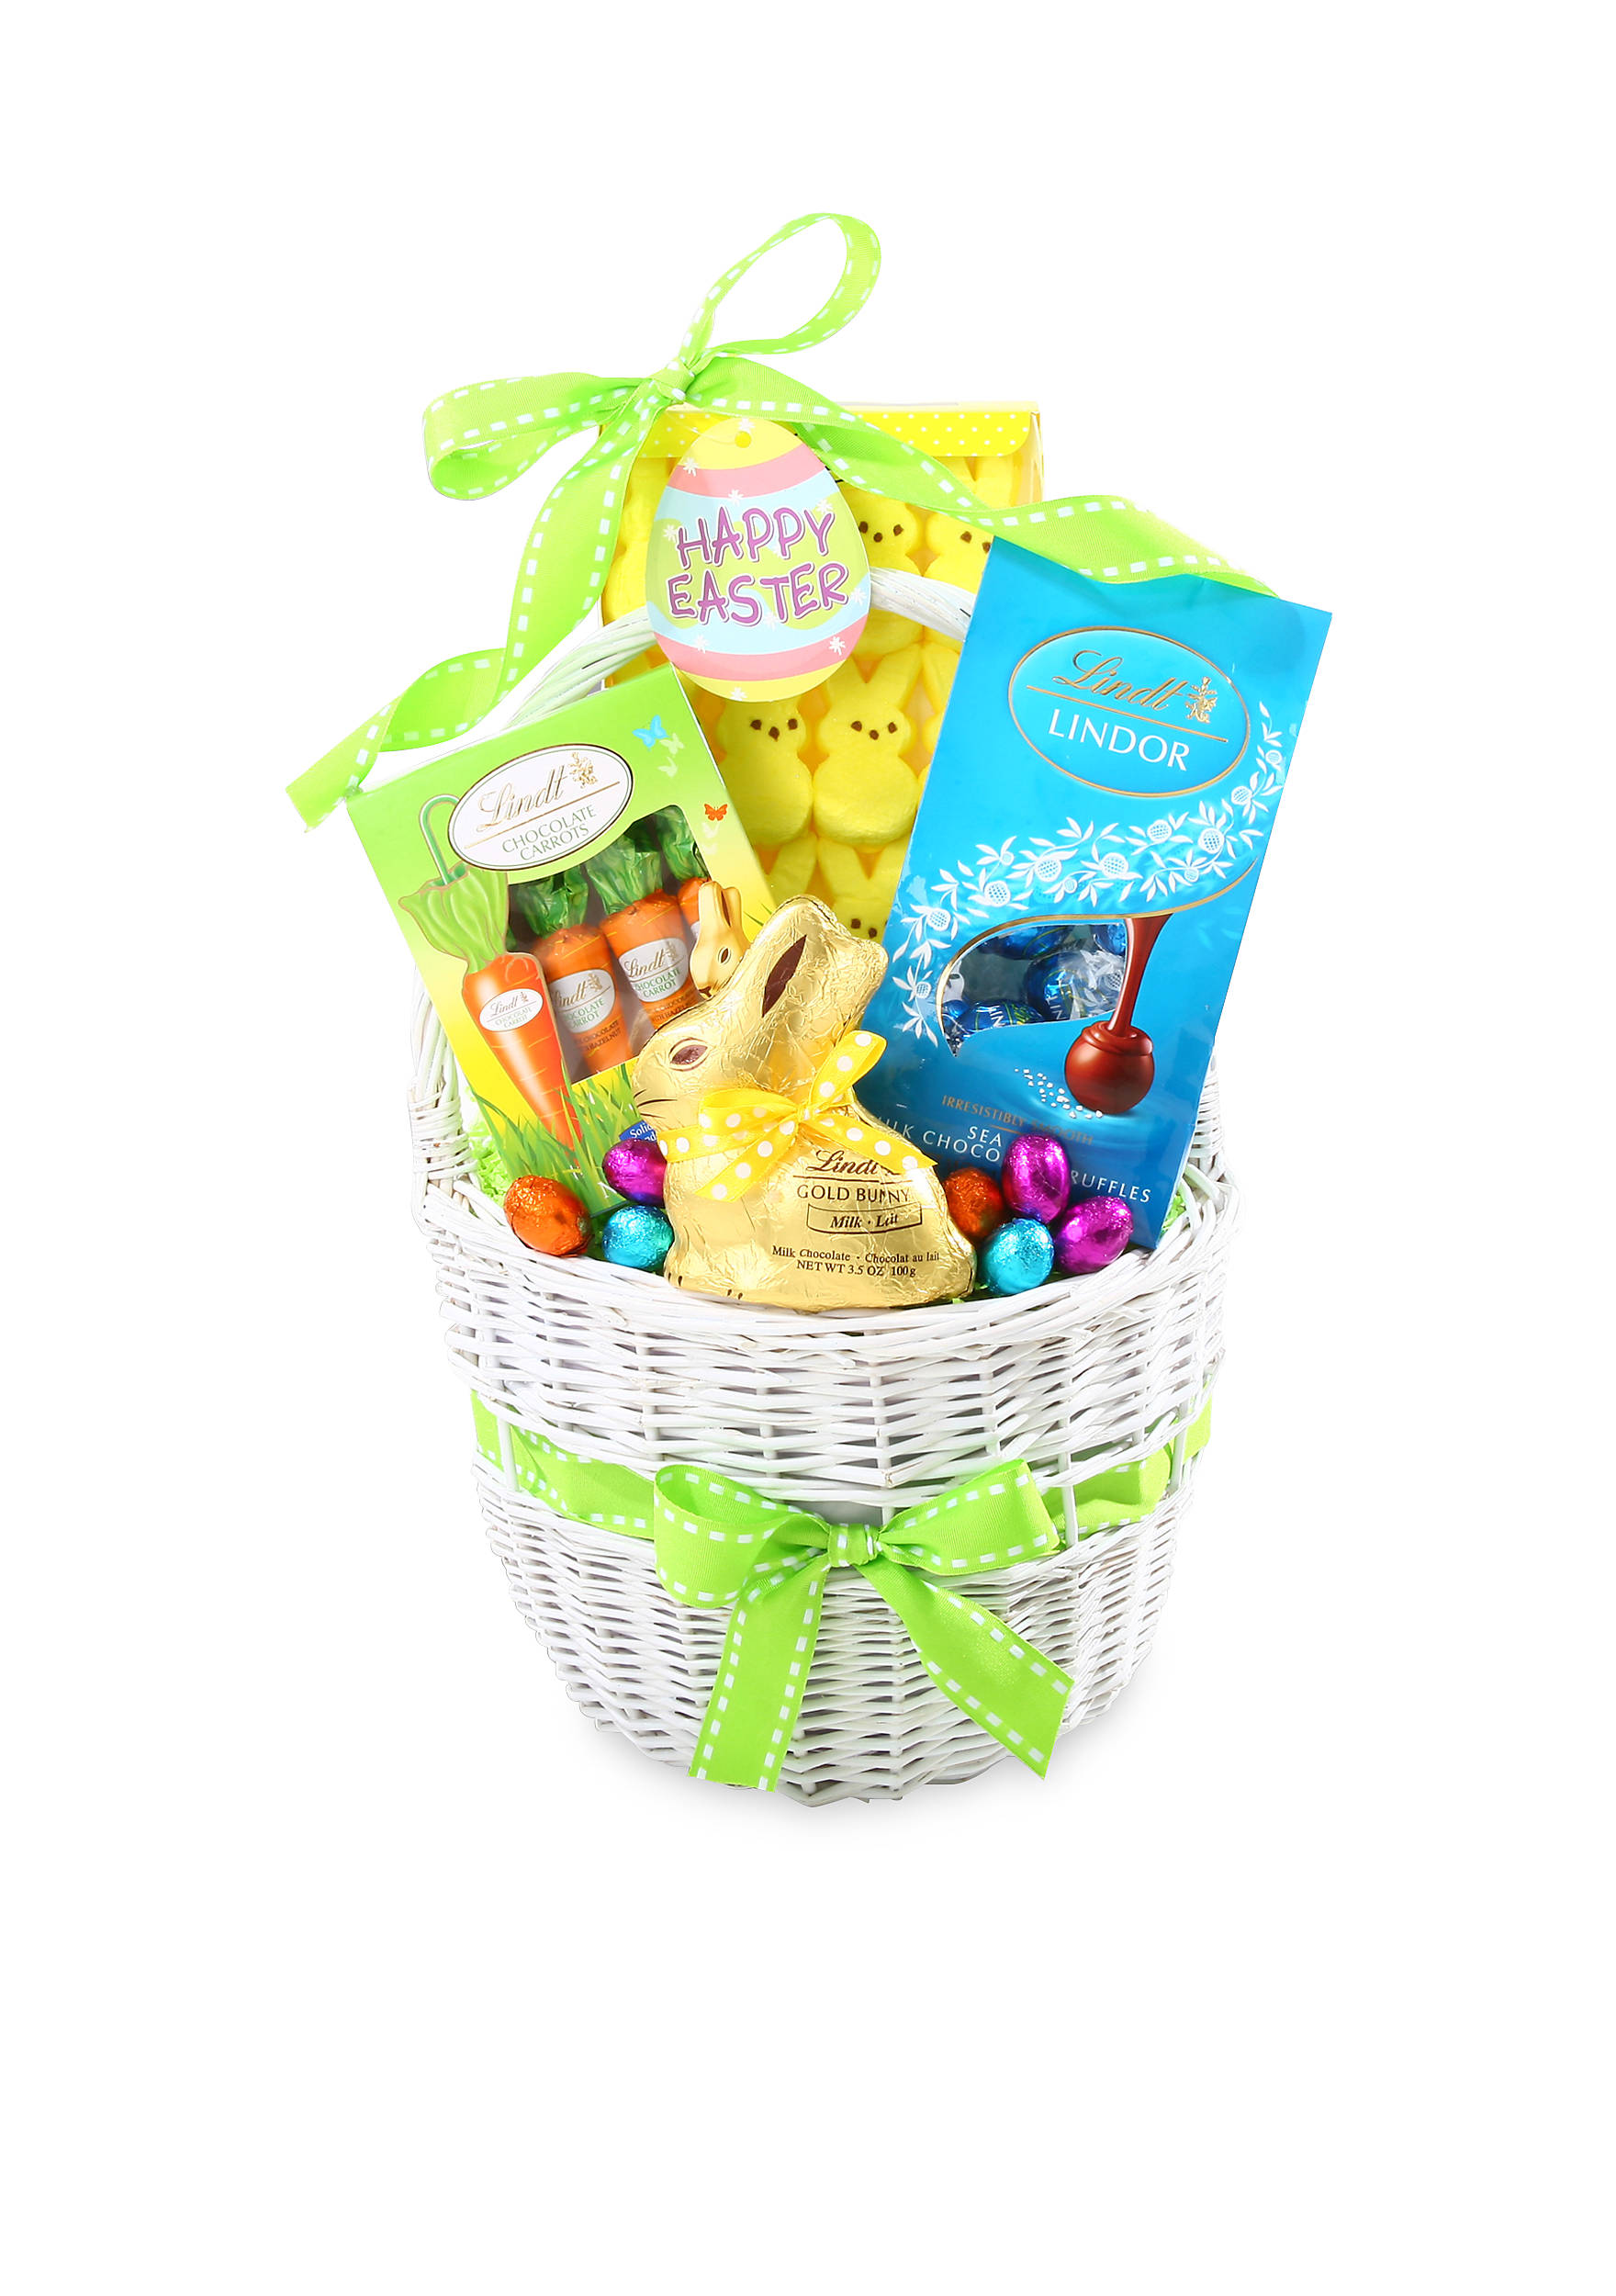 The gifting group lindt holiday easter basket belk back to gourmet gifts the gifting group lindt holiday easter basket negle Images